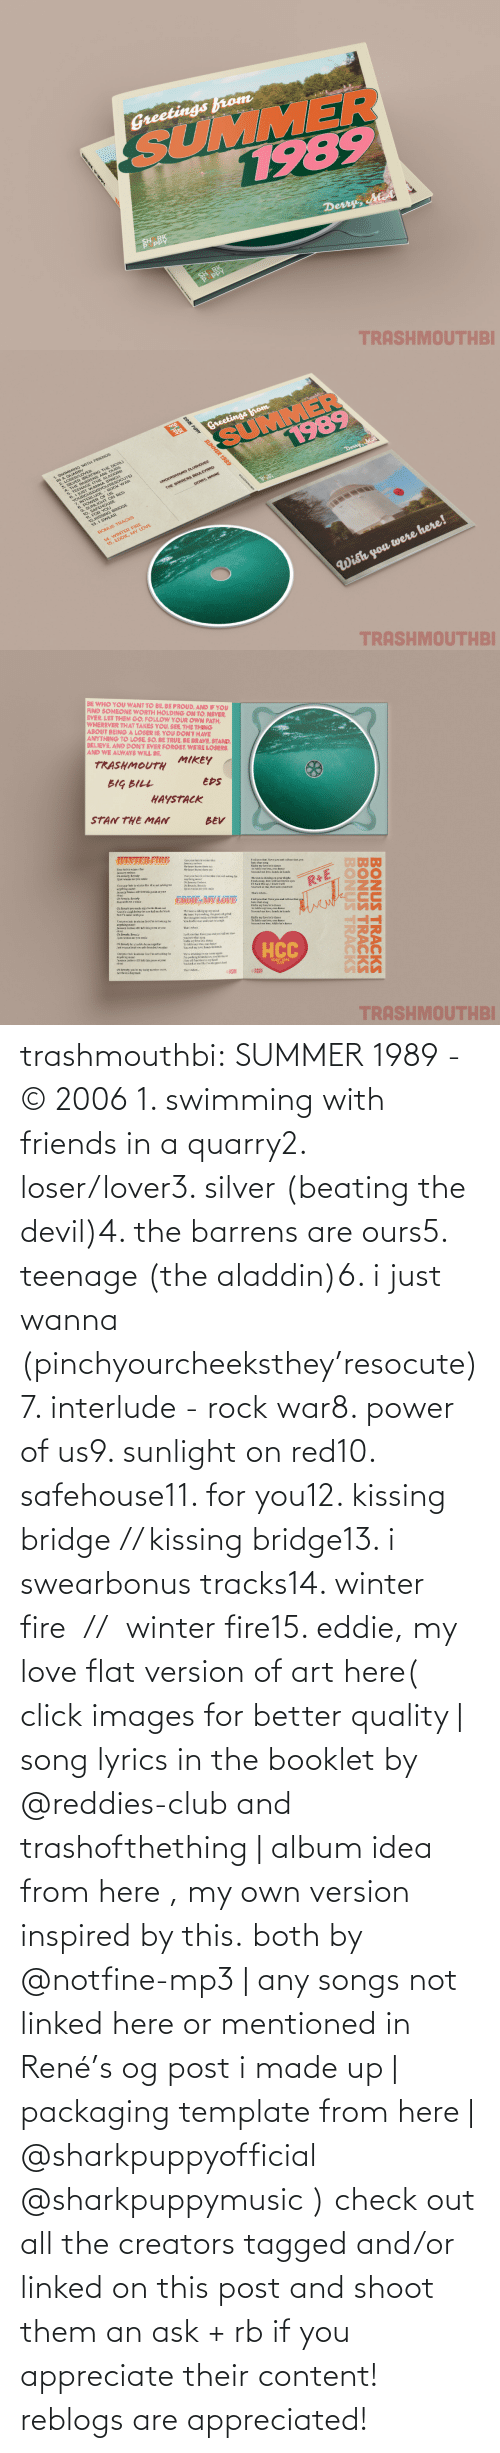 kissing: trashmouthbi: SUMMER 1989 - © 2006 1. swimming with friends in a quarry2. loser/lover3. silver (beating the devil)4. the barrens are ours5. teenage (the aladdin)6. i just wanna (pinchyourcheeksthey'resocute)7. interlude - rock war8. power of us9. sunlight on red10. safehouse11. for you12. kissing bridge // kissing bridge13. i swearbonus tracks14. winter fire  //  winter fire15. eddie, my love flat version of art here( click images for better quality | song lyrics in the booklet by @reddies-club​ and trashofthething | album idea from here , my own version inspired by this. both by @notfine-mp3​ | any songs not linked here or mentioned in René's og post i made up | packaging template from here | @sharkpuppyofficial​ @sharkpuppymusic​ ) check out all the creators tagged and/or linked on this post and shoot them an ask + rb if you appreciate their content! reblogs are appreciated!